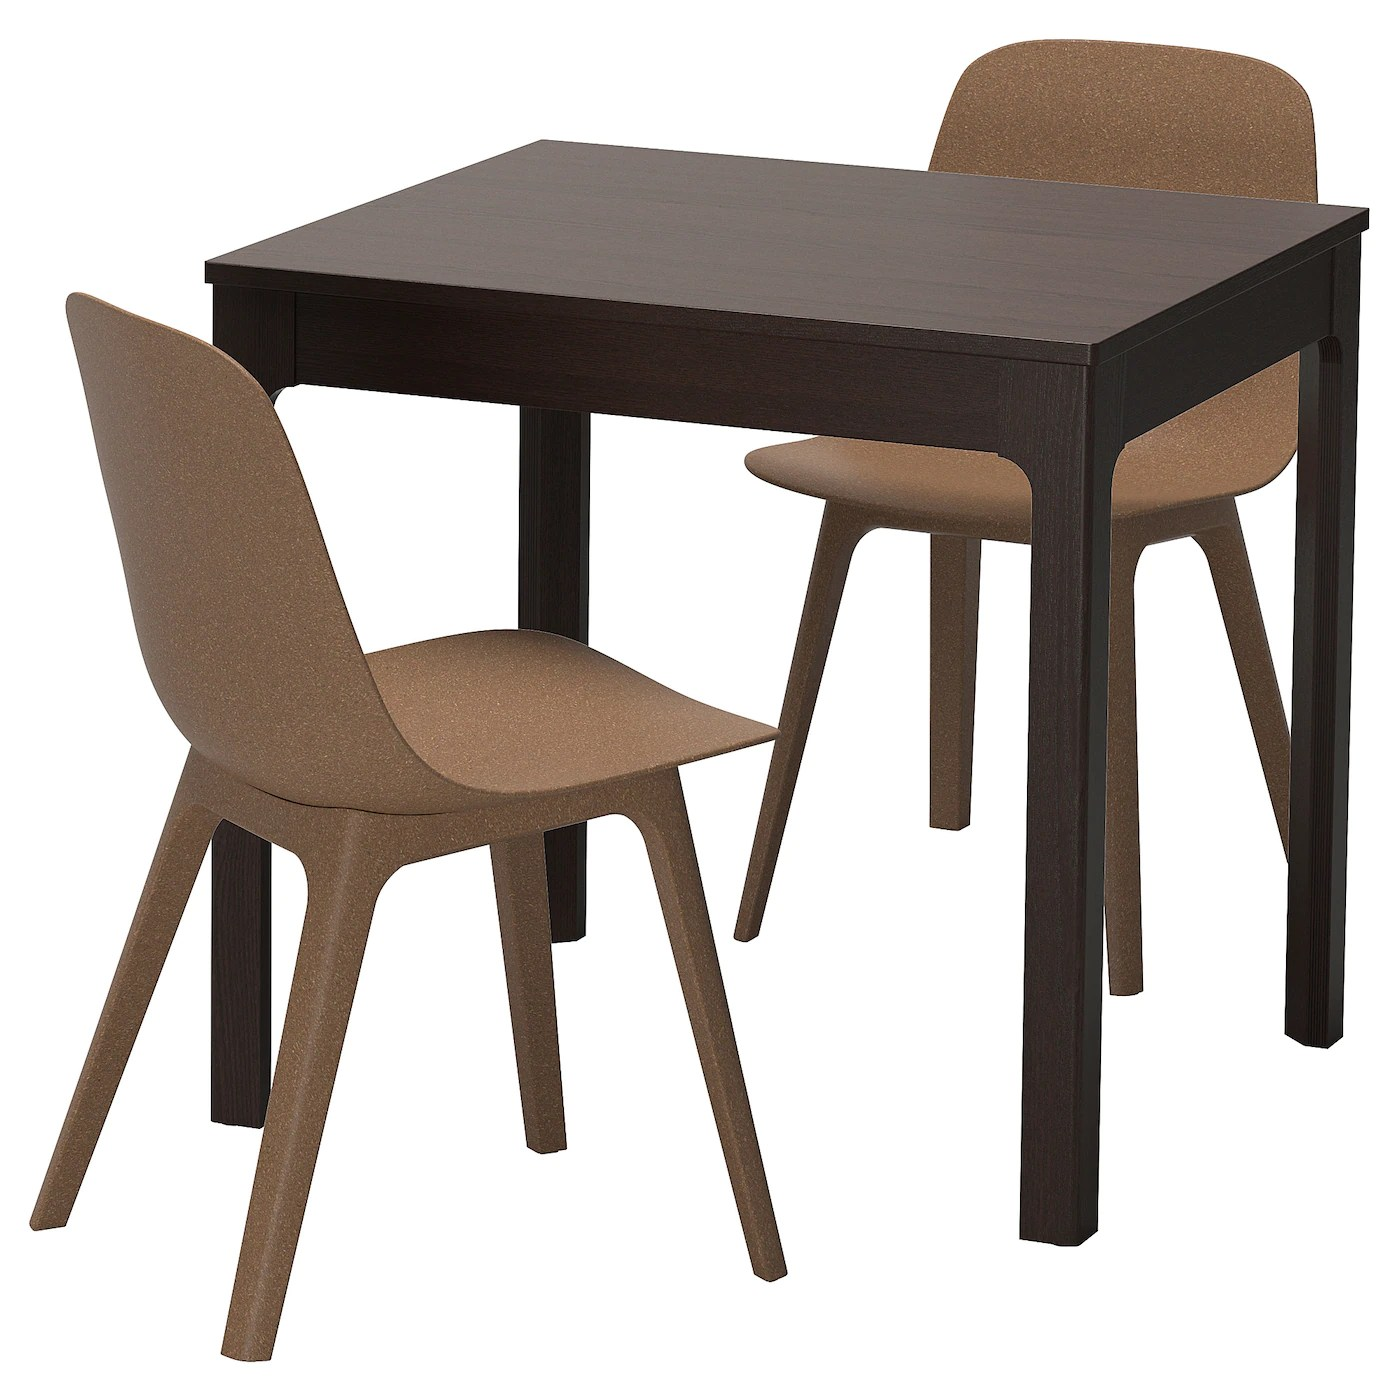 Table With Two Chairs Small Dining Table Sets 2 Seater Dining Table Chairs Ikea